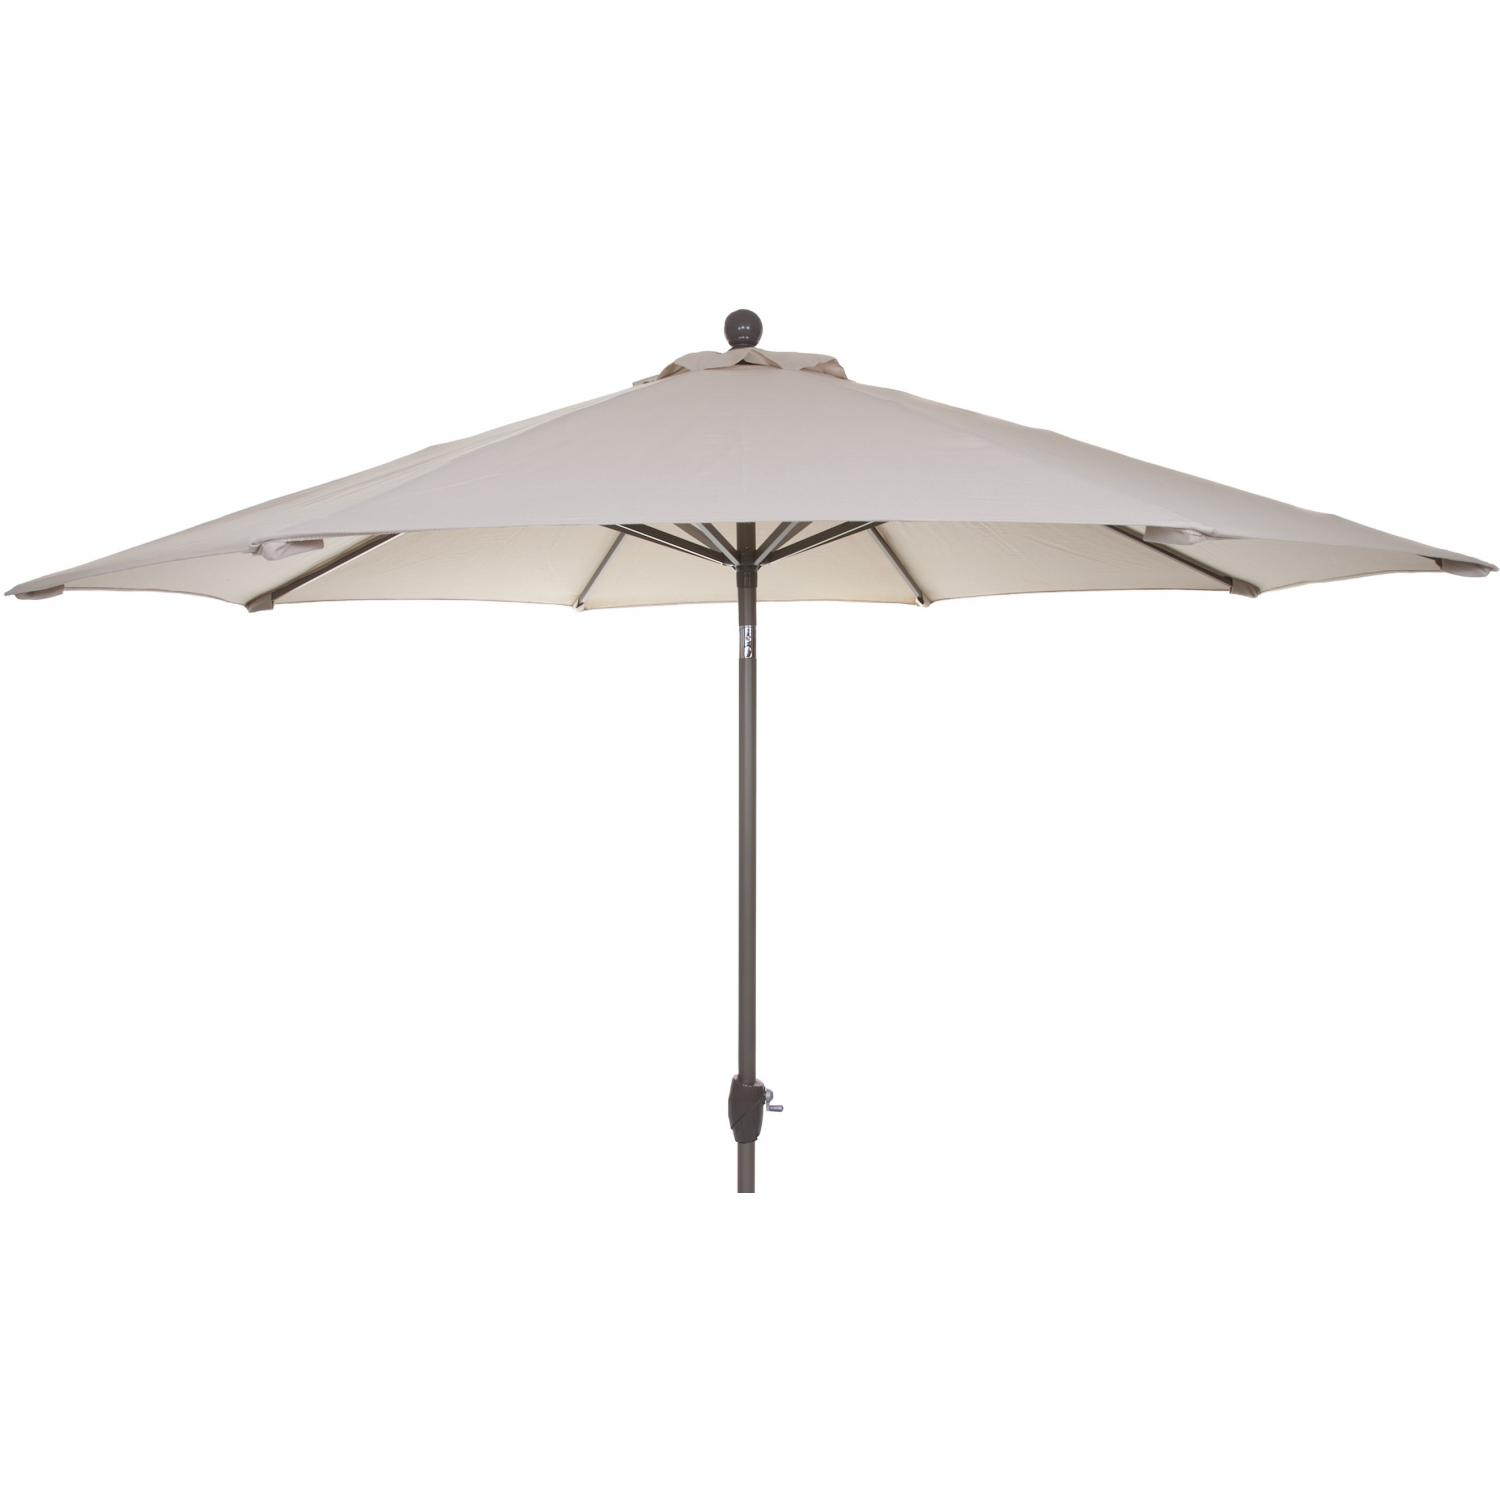 Picture of 9 Ft Aluminum Patio Umbrella - Antique Beige